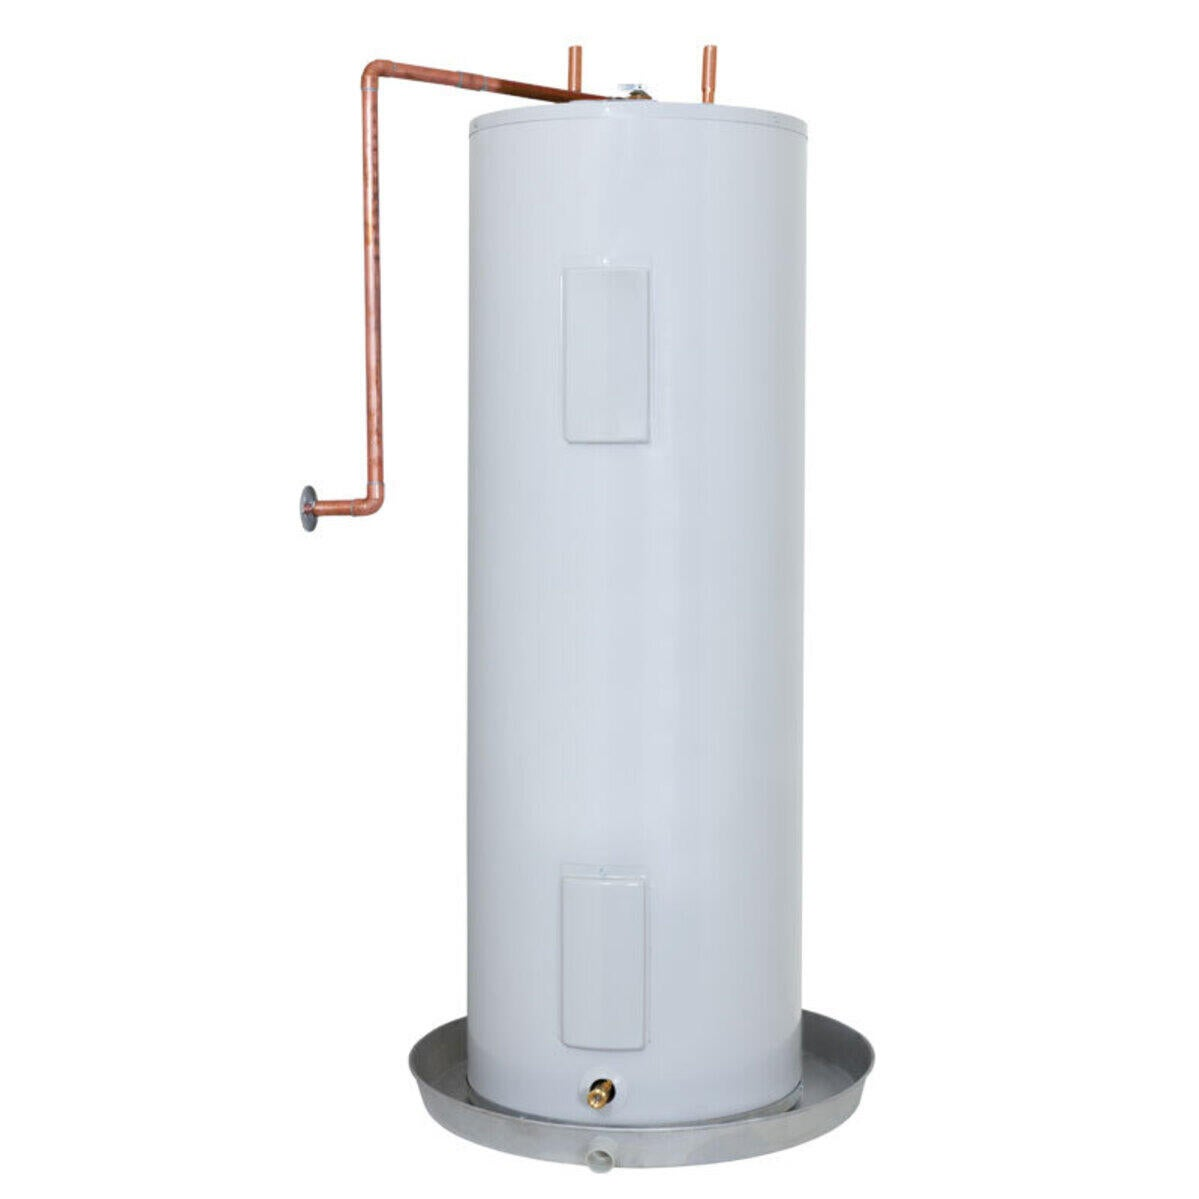 Home Water Heater Warranty Coverage American Home Shield